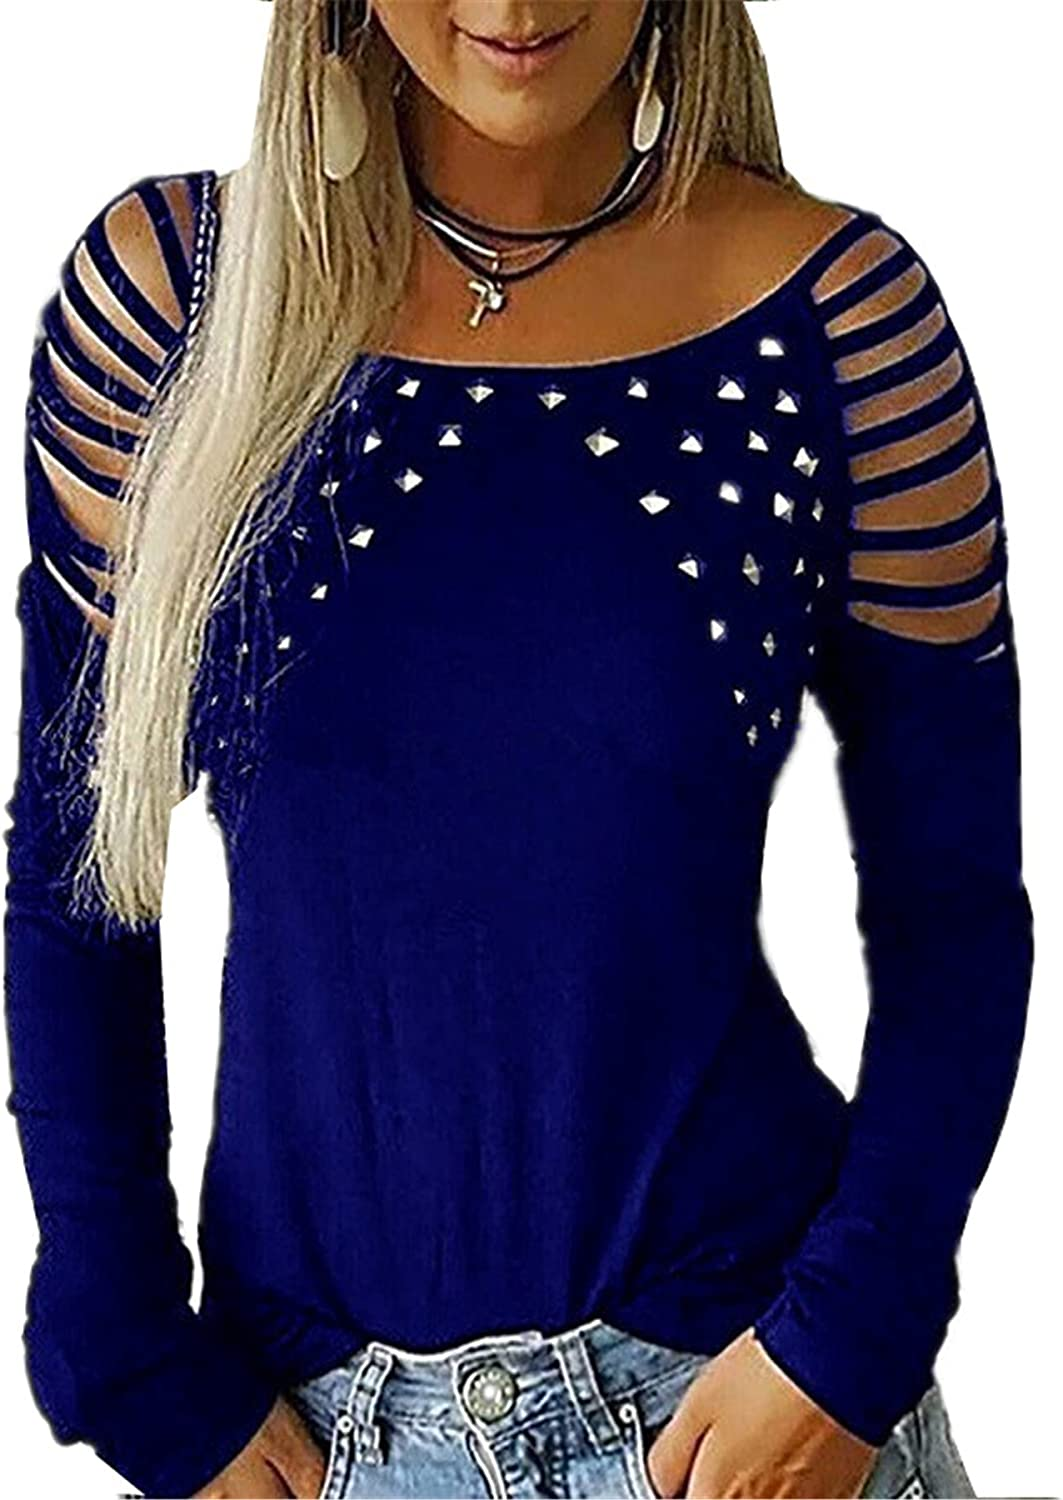 Andongnywell Women's Hollow-Out Cold Shoulder Sexy 2021new shipping free Rhinestone Under blast sales Sl